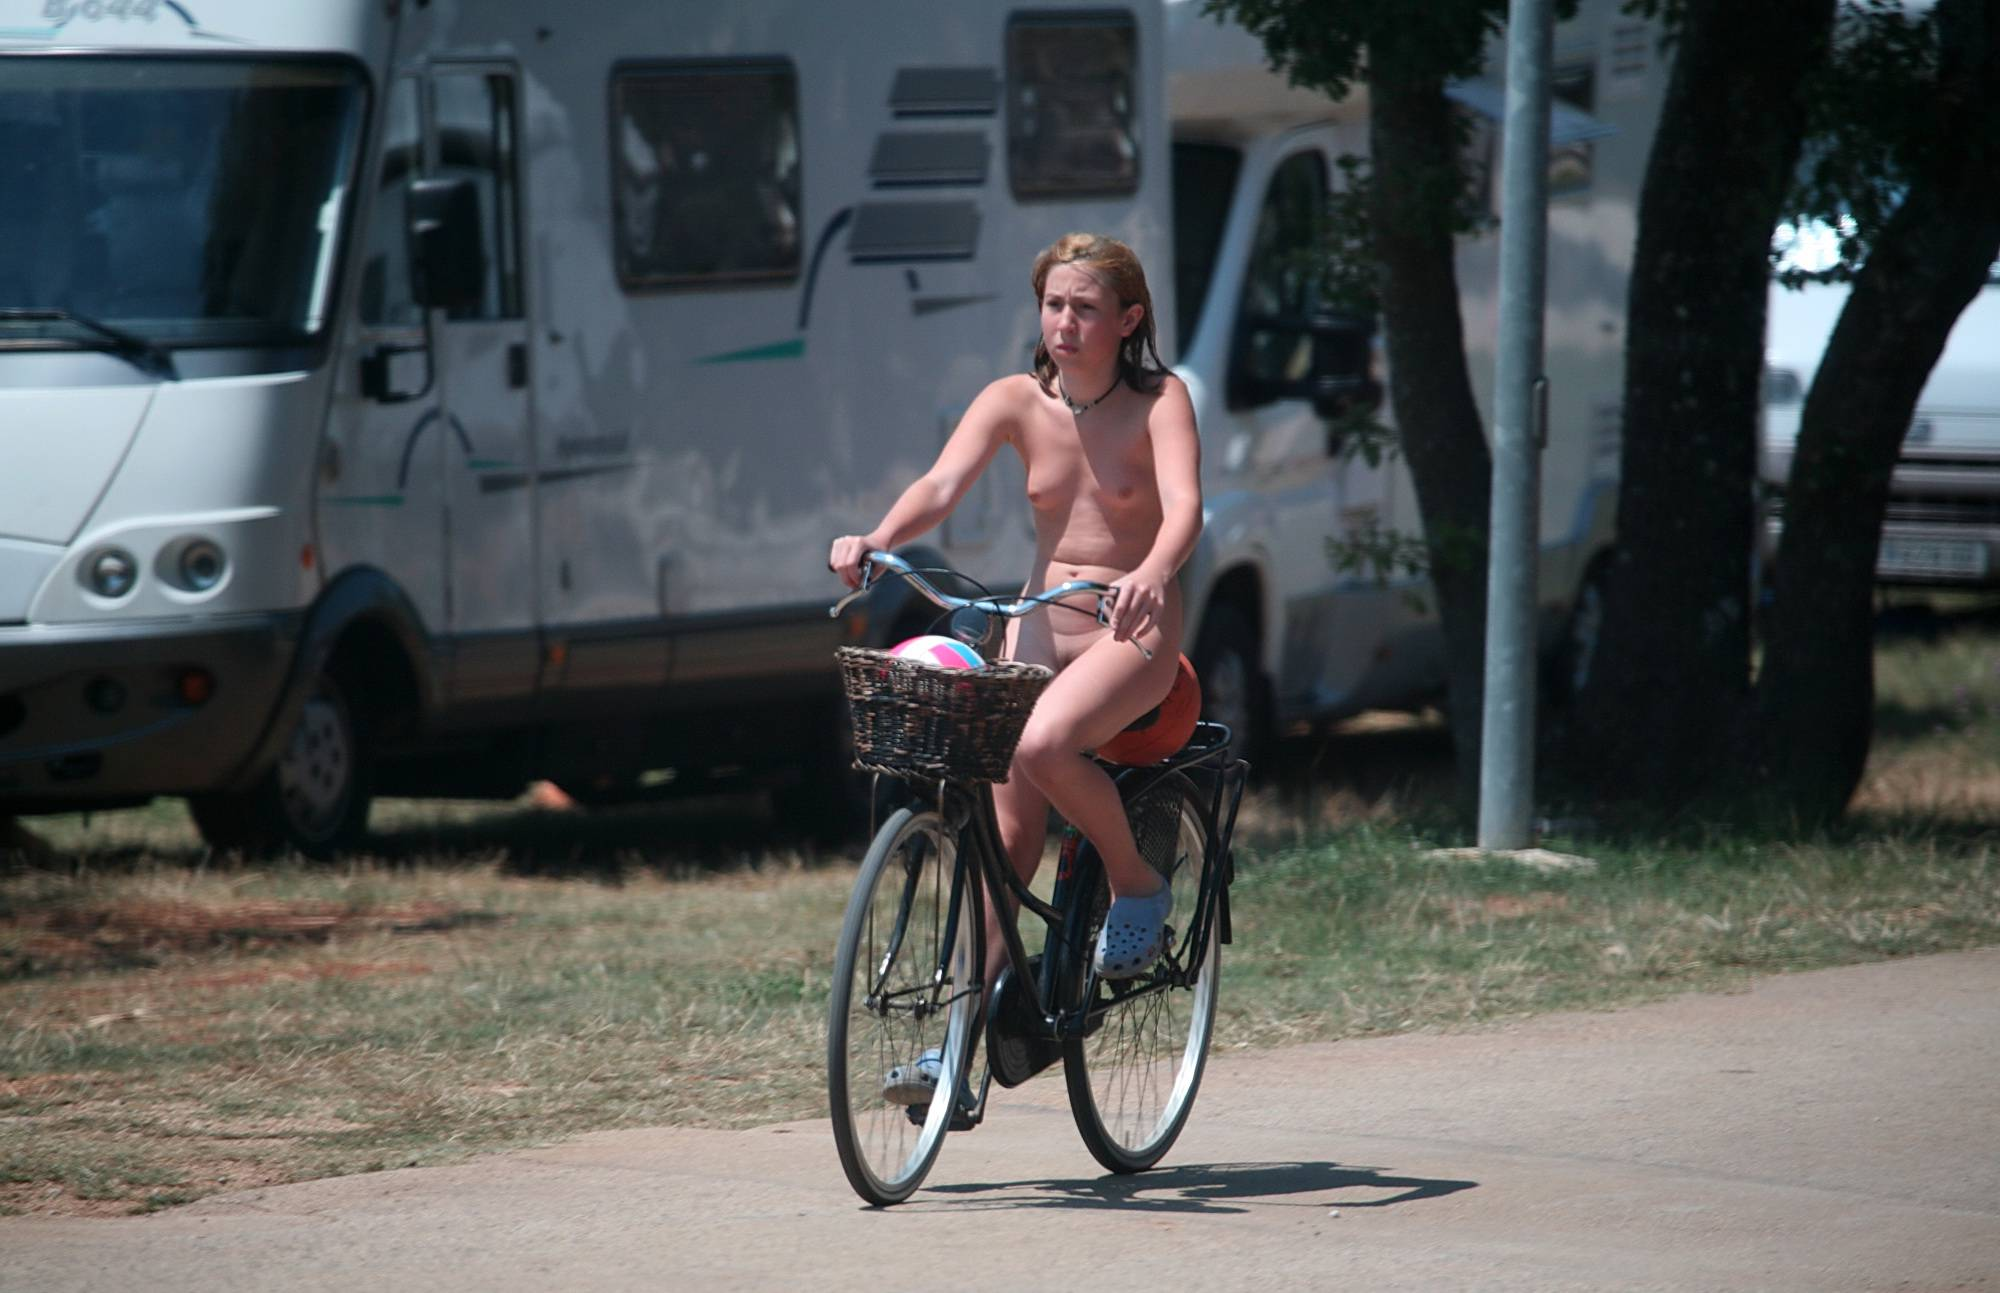 Nudist Pictures Leaving the Outdoor Site - 2